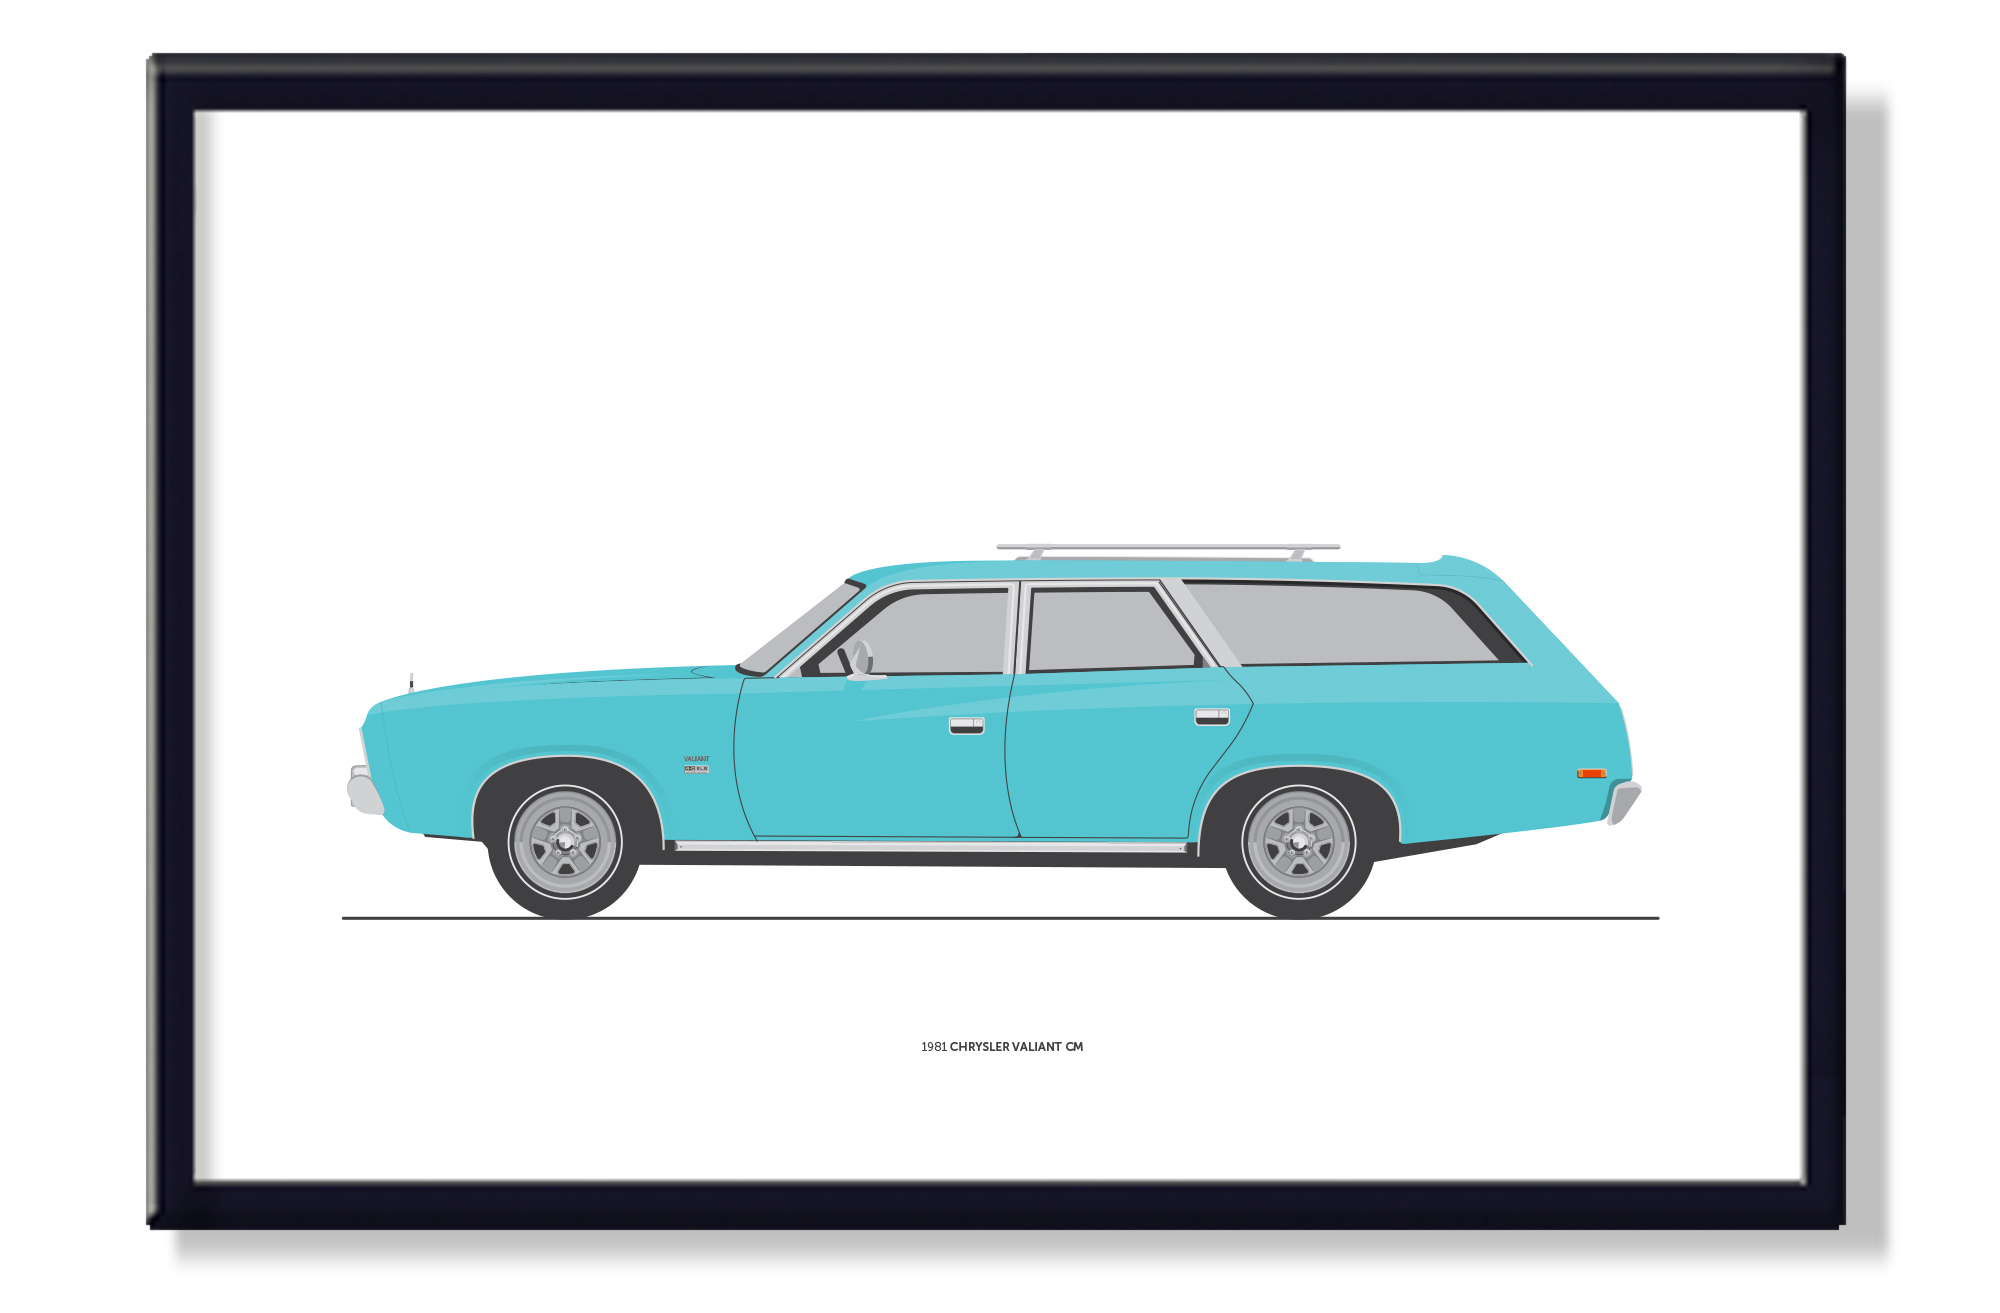 Blog-image-Chrysler-Valiant-CM